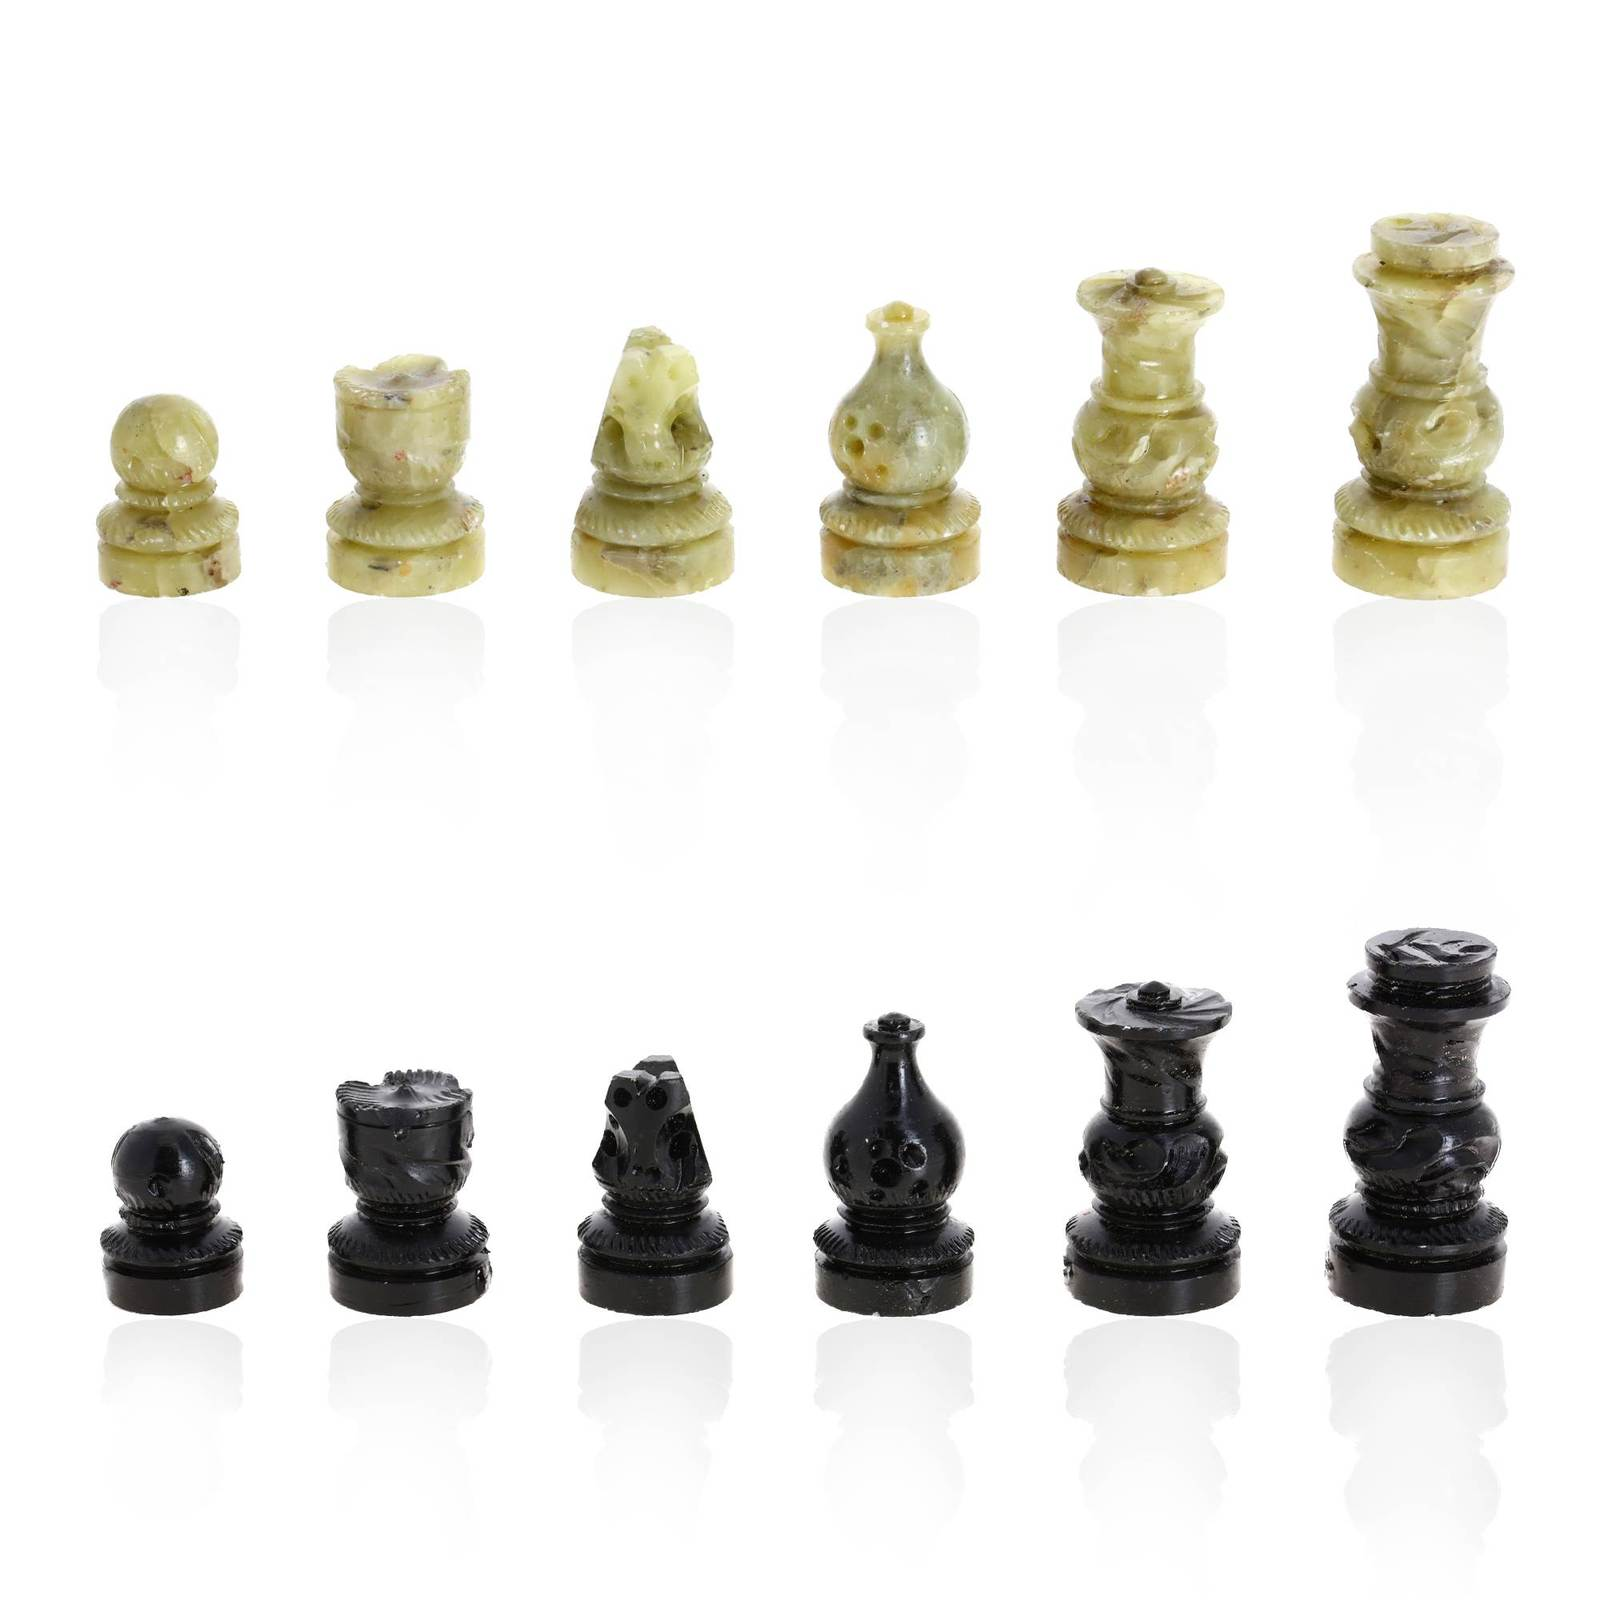 Shalinindia stone chess set 8 inch contemporary chess - Granite chess pieces ...